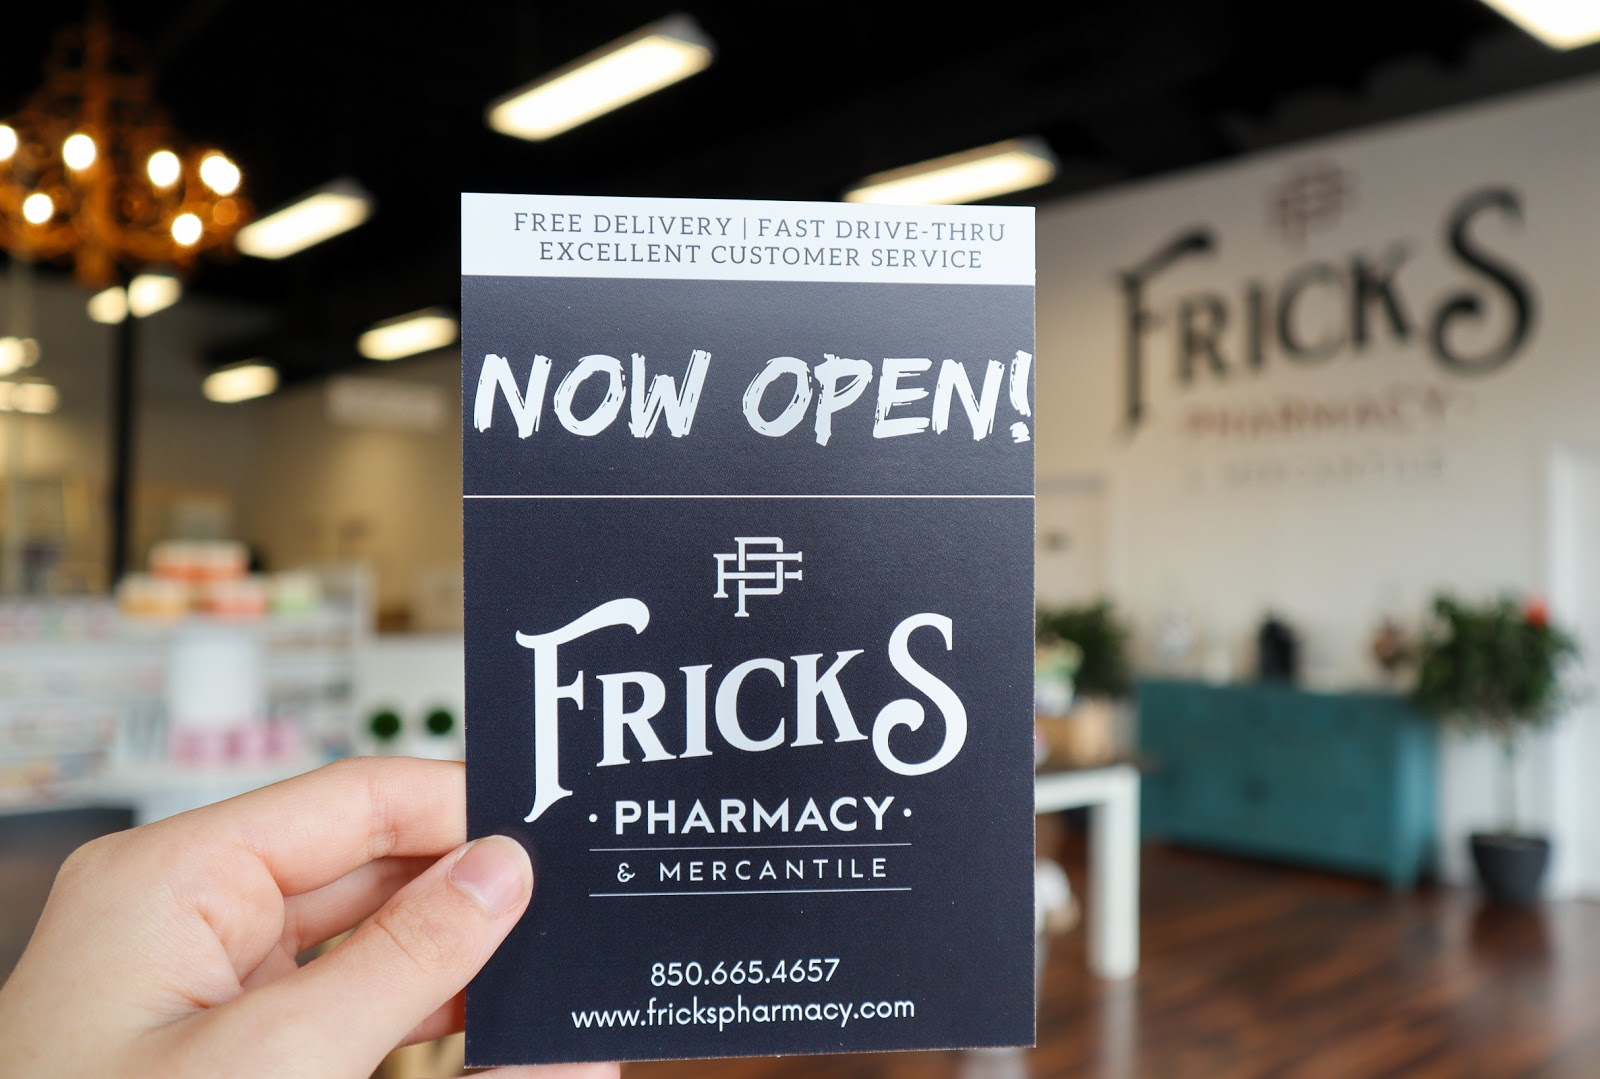 Fricks Pharmacy flyer